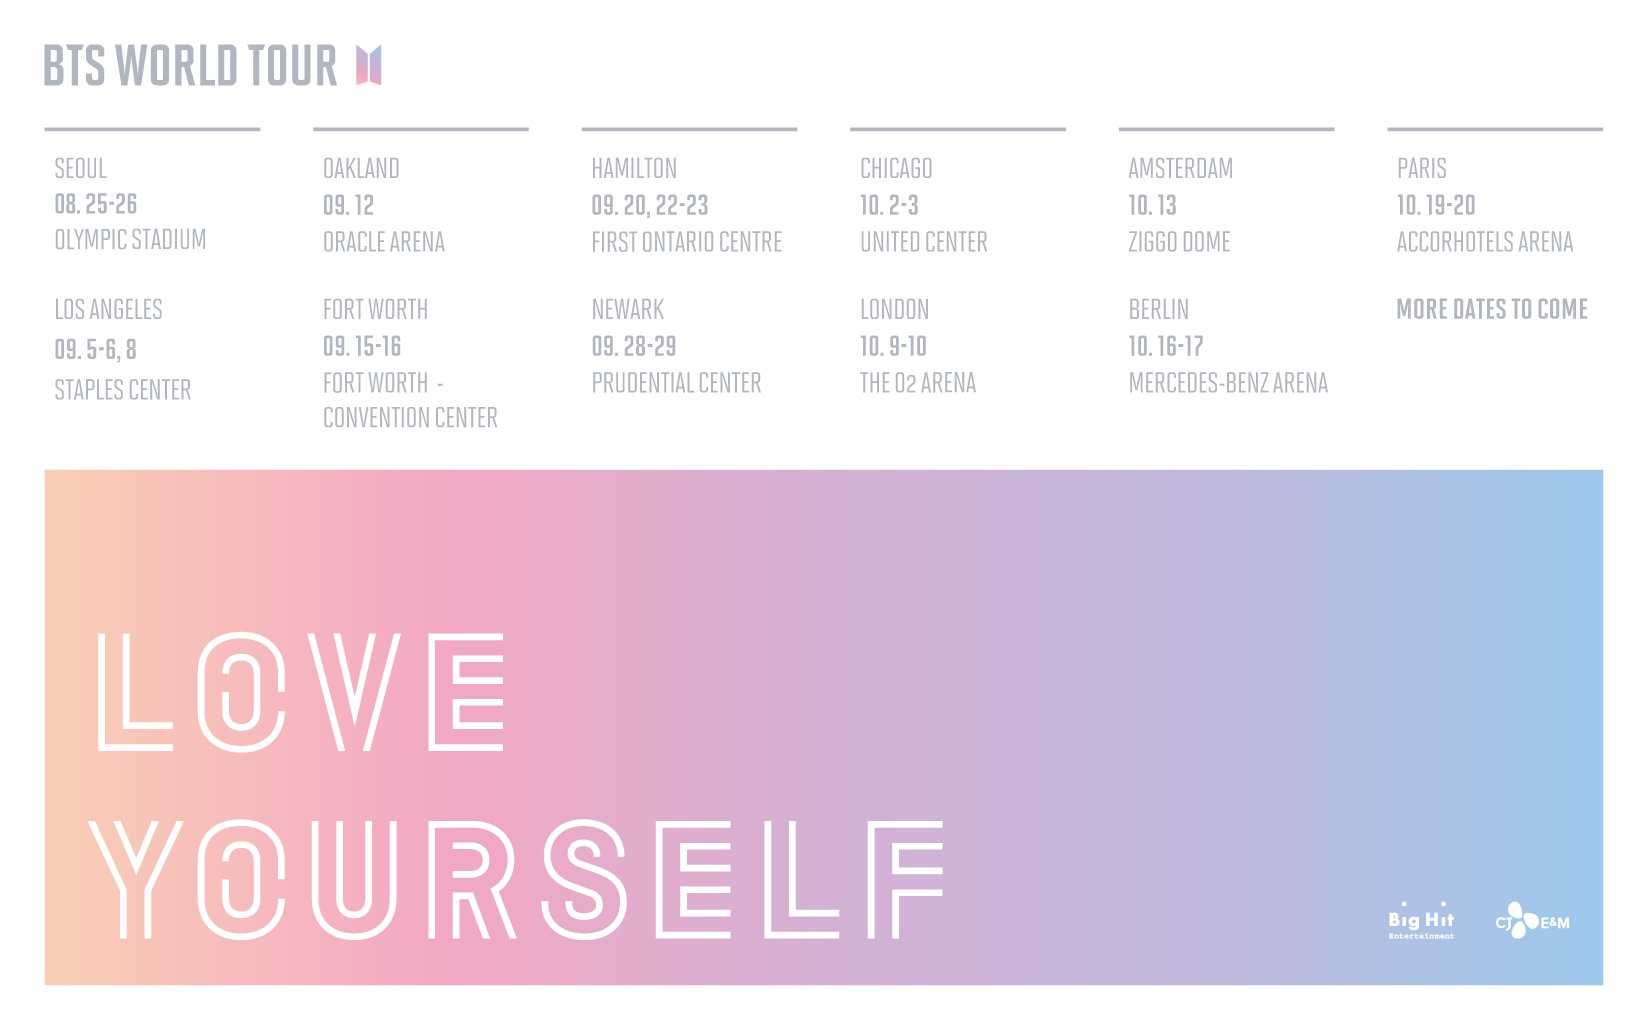 Bts world tour love yourself europe dvd eng sub